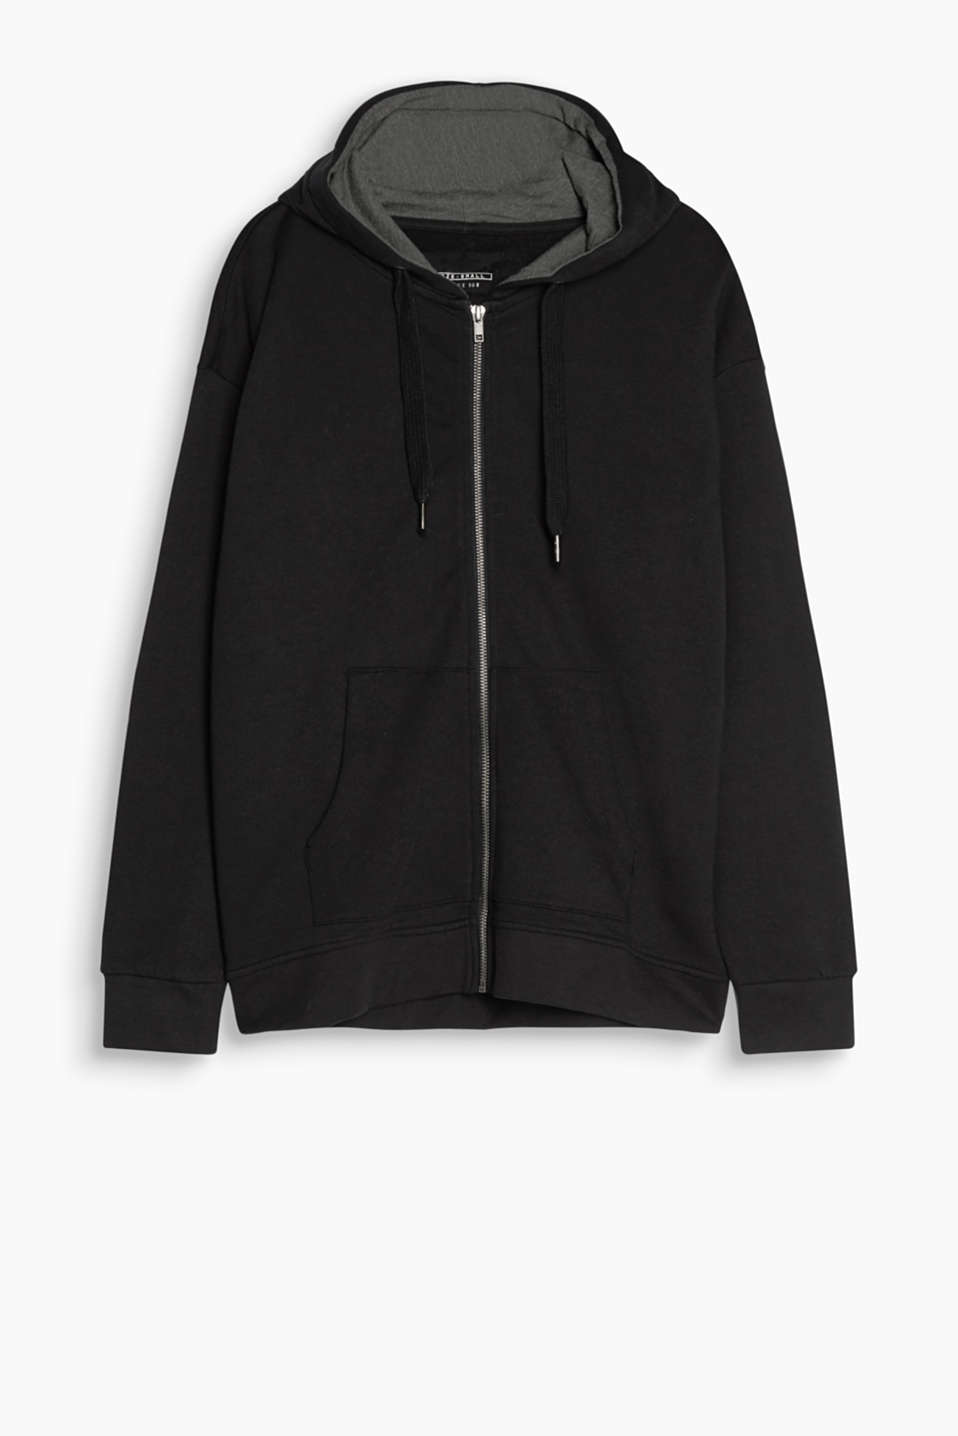 Comfy style for relaxed looks: Hooded sweatshirt jacket in soft cotton material